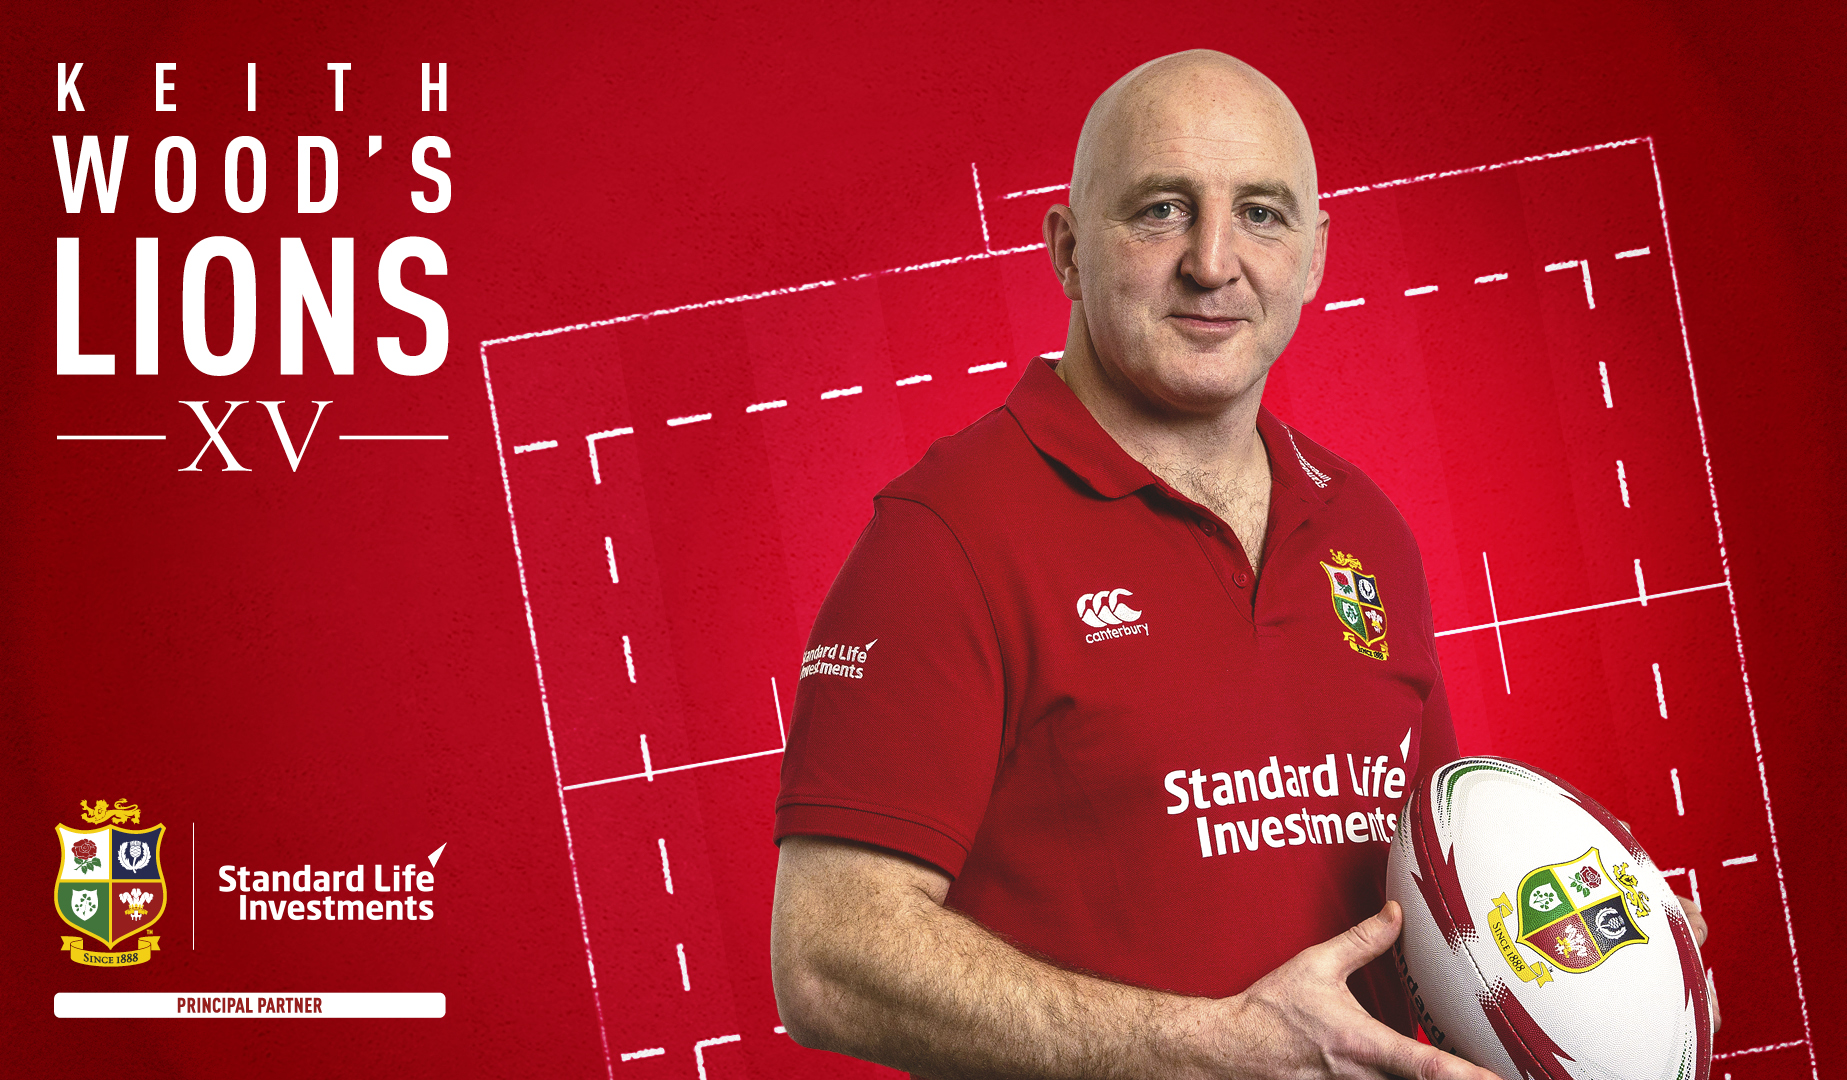 Standard Life Investments Ambassador Wood to select Lions XV from Round 4